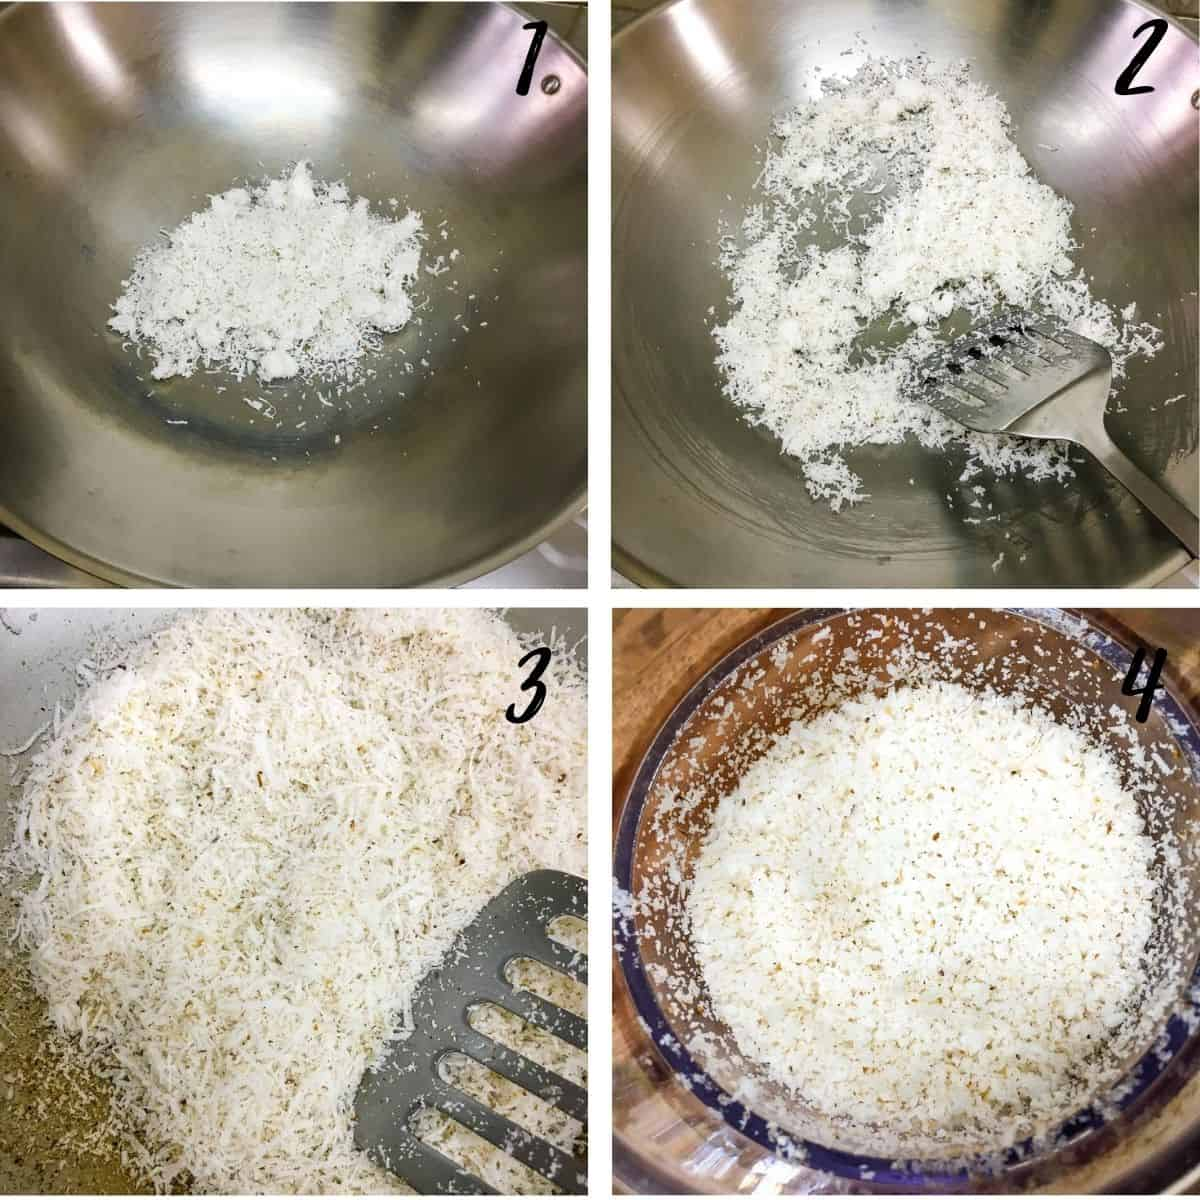 A poster of 4 images showing how to dry roast grated coconut and how to process it for fine grates of coconut